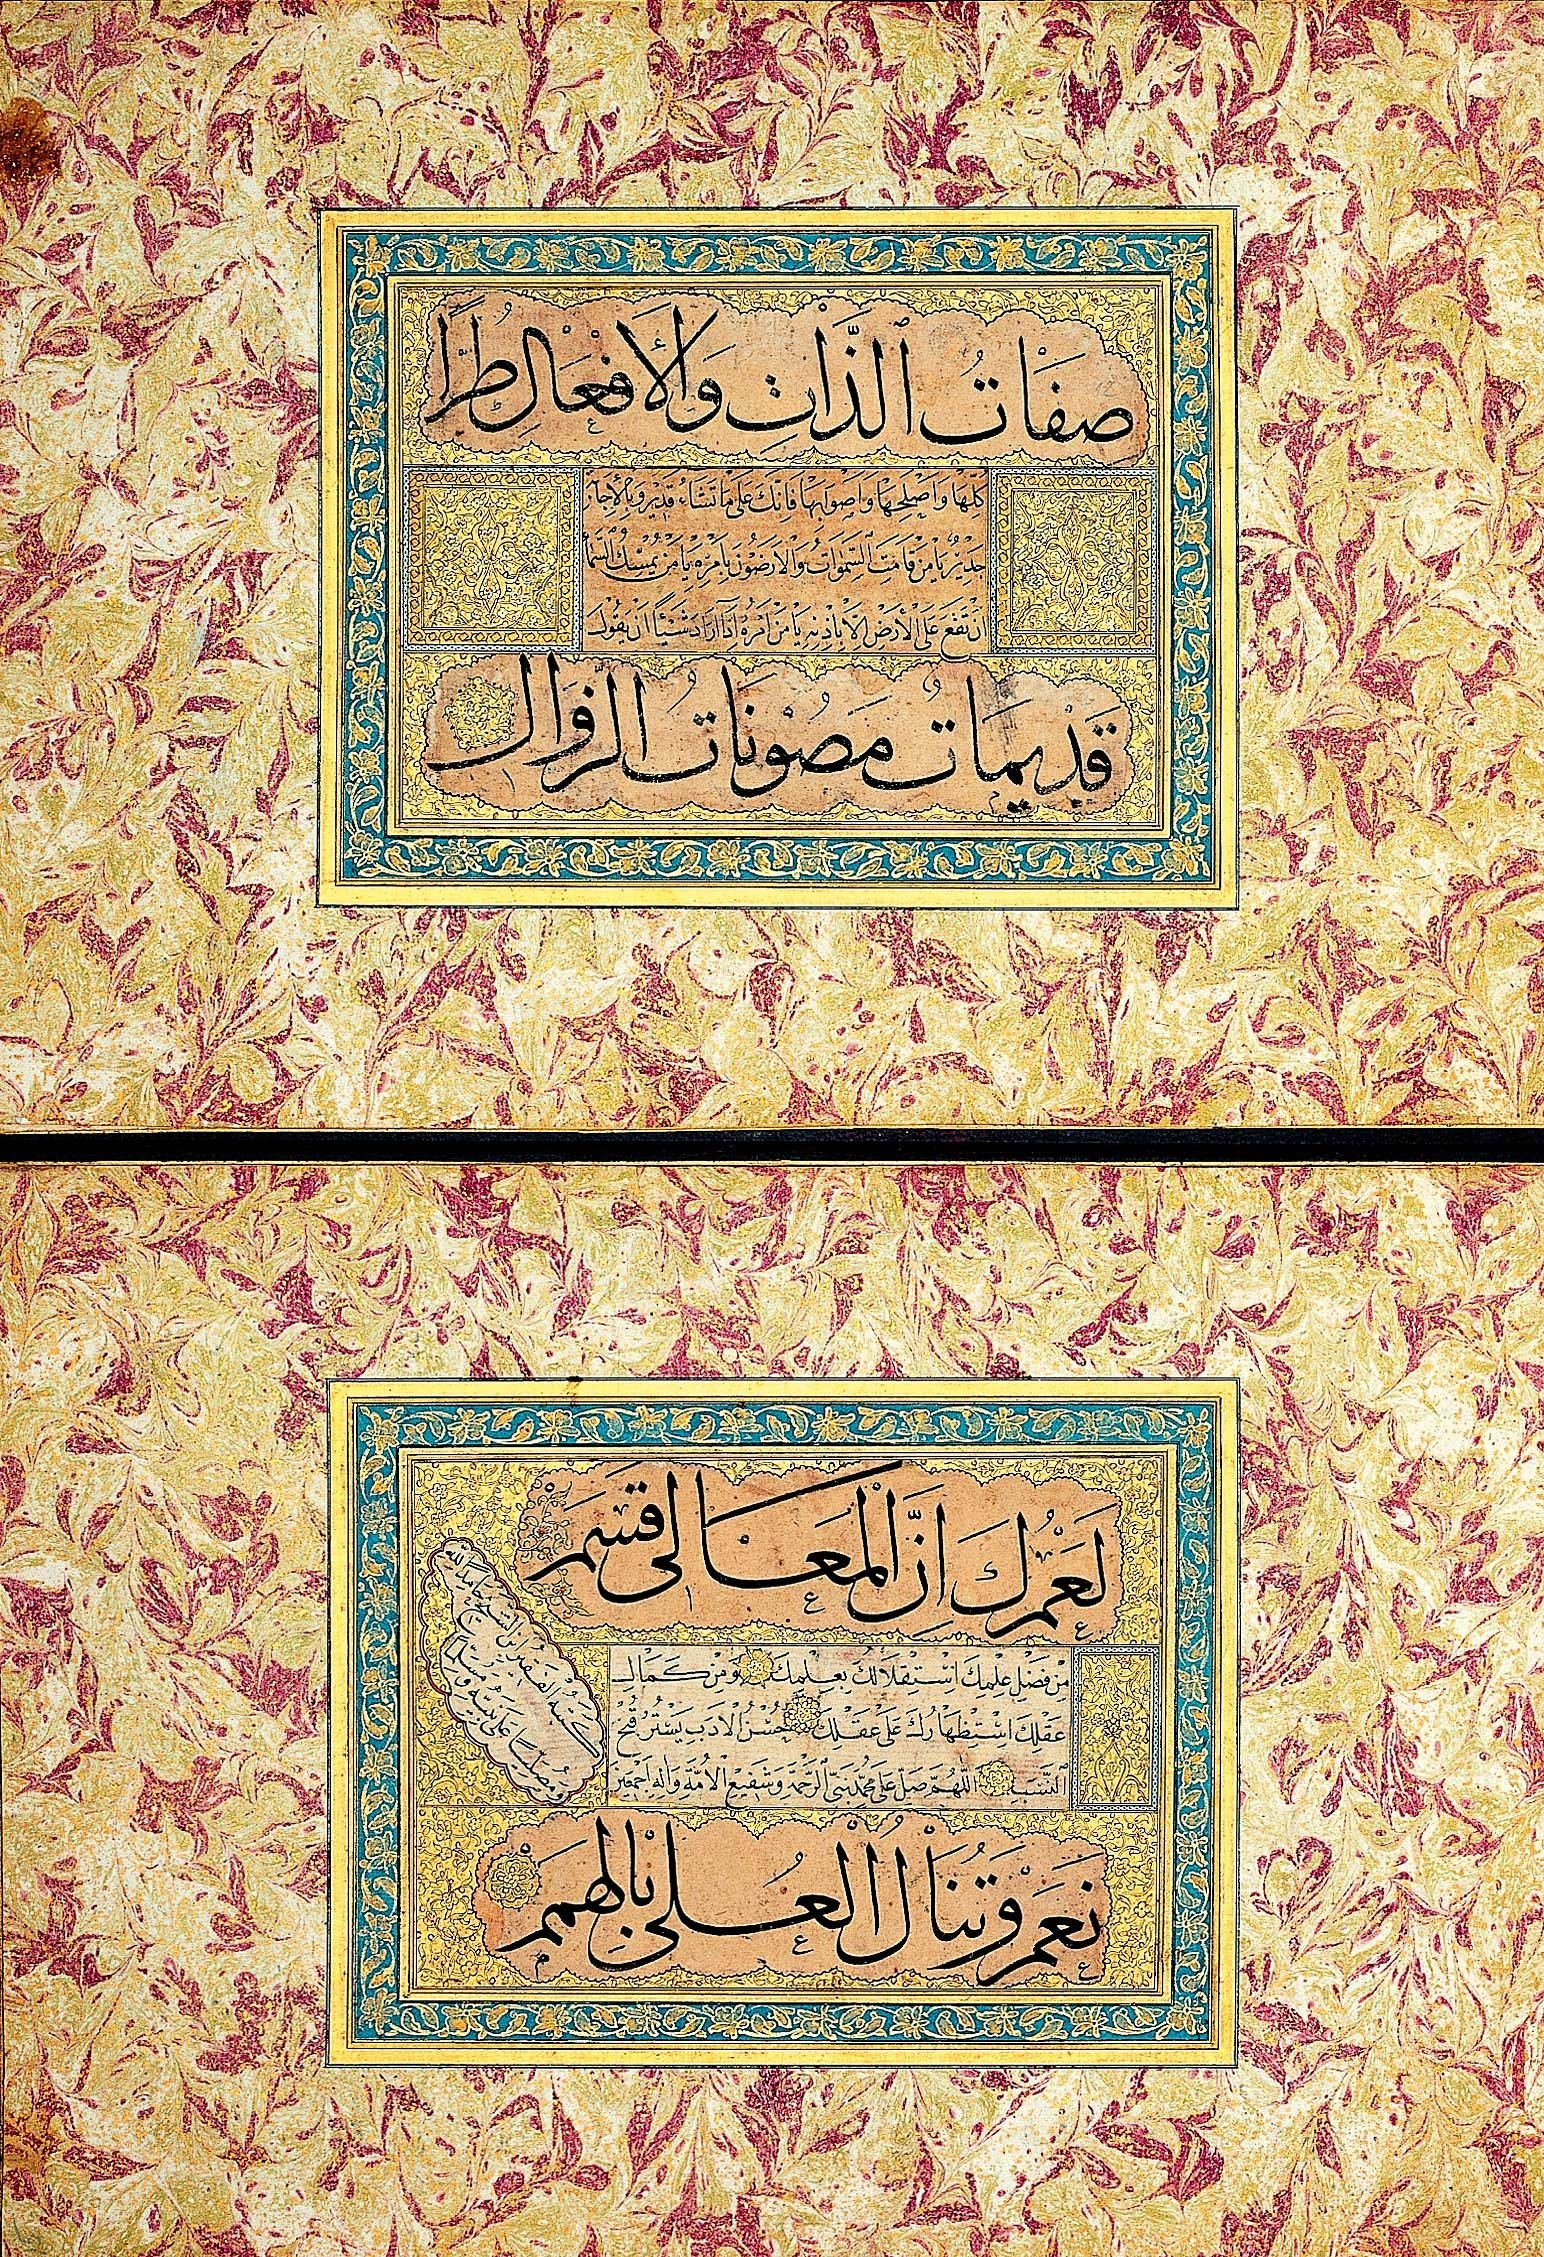 A calligraphic album with thuluth and naskh scripts by Sheikh Hamdullah. (Courtesy of Sakıp Sabancı Museum)